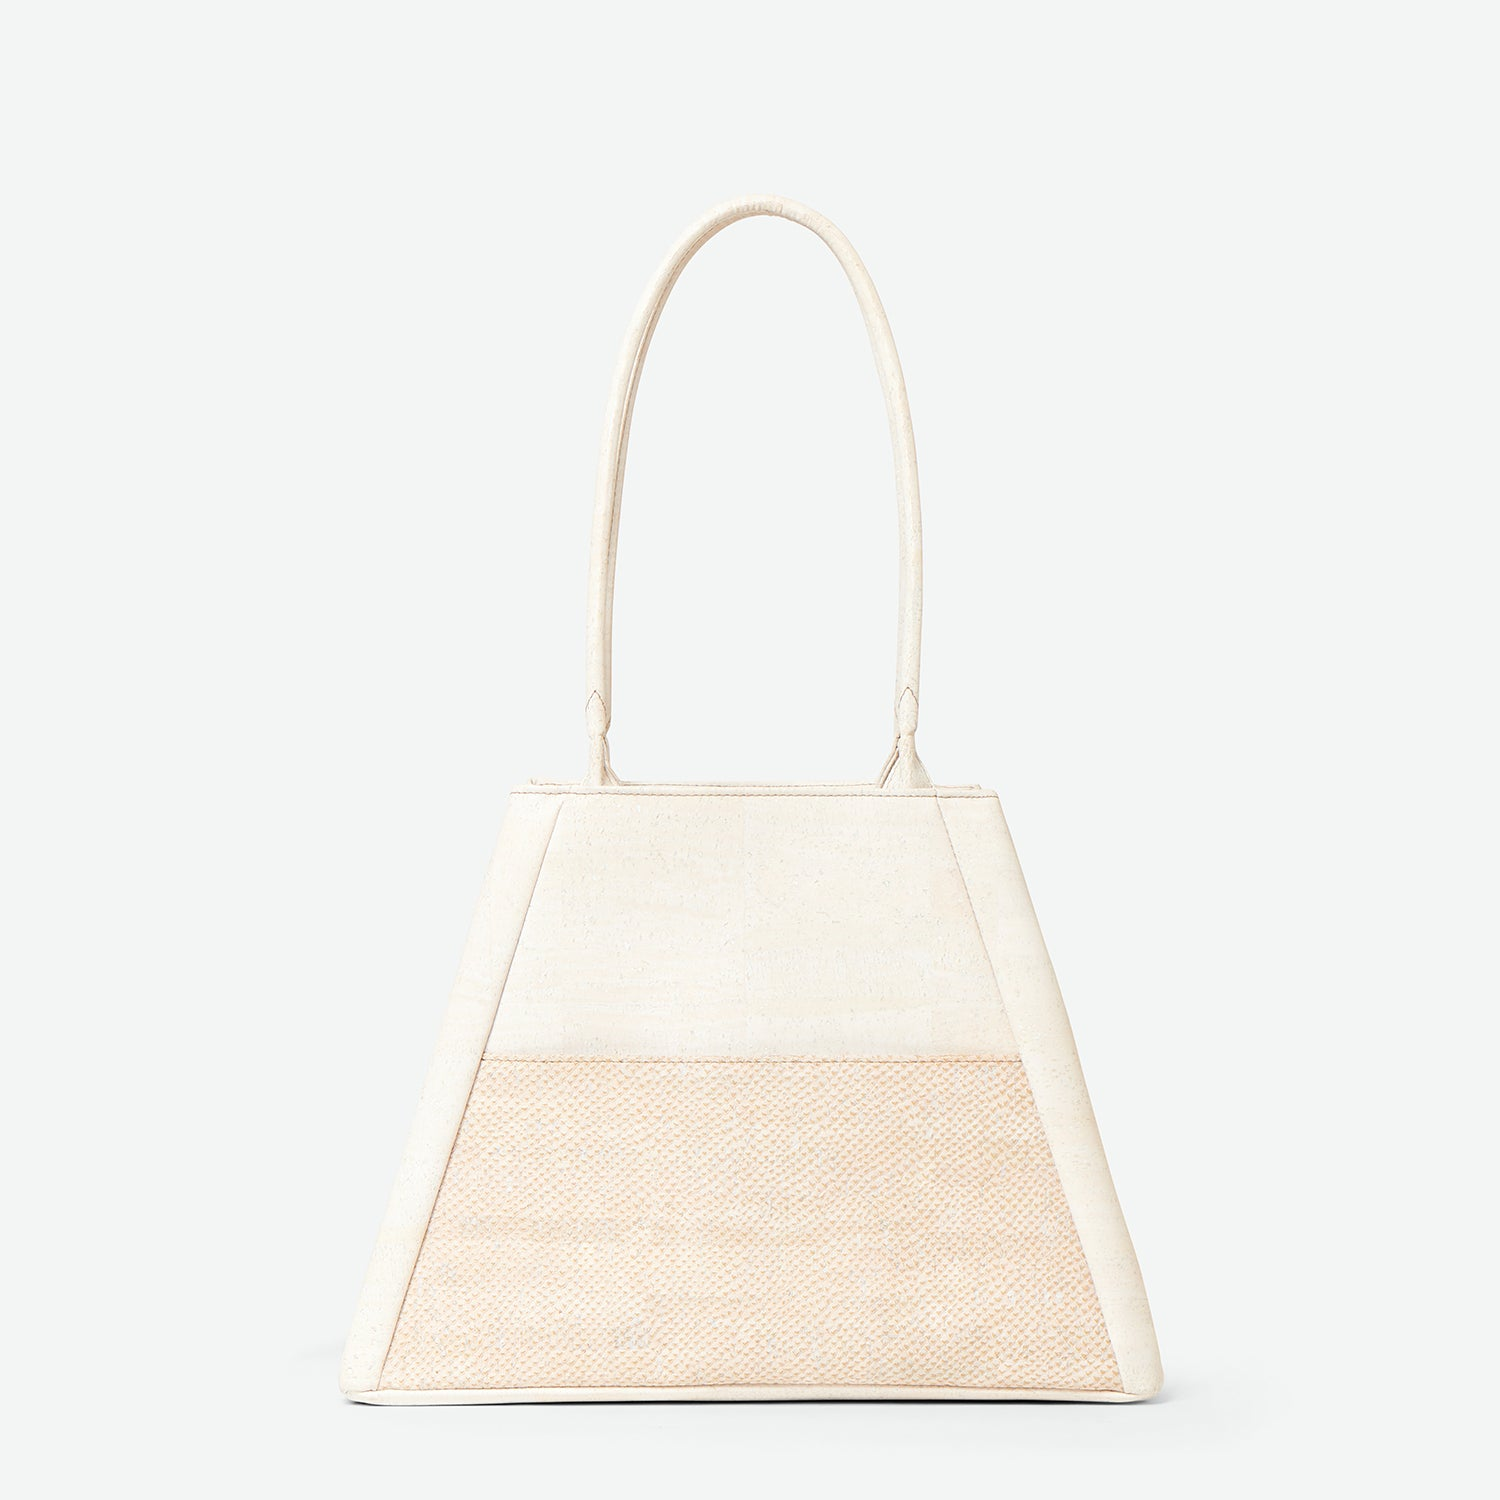 Yvonne - Cork Tote Bag - Paula Parisotto - Pearl